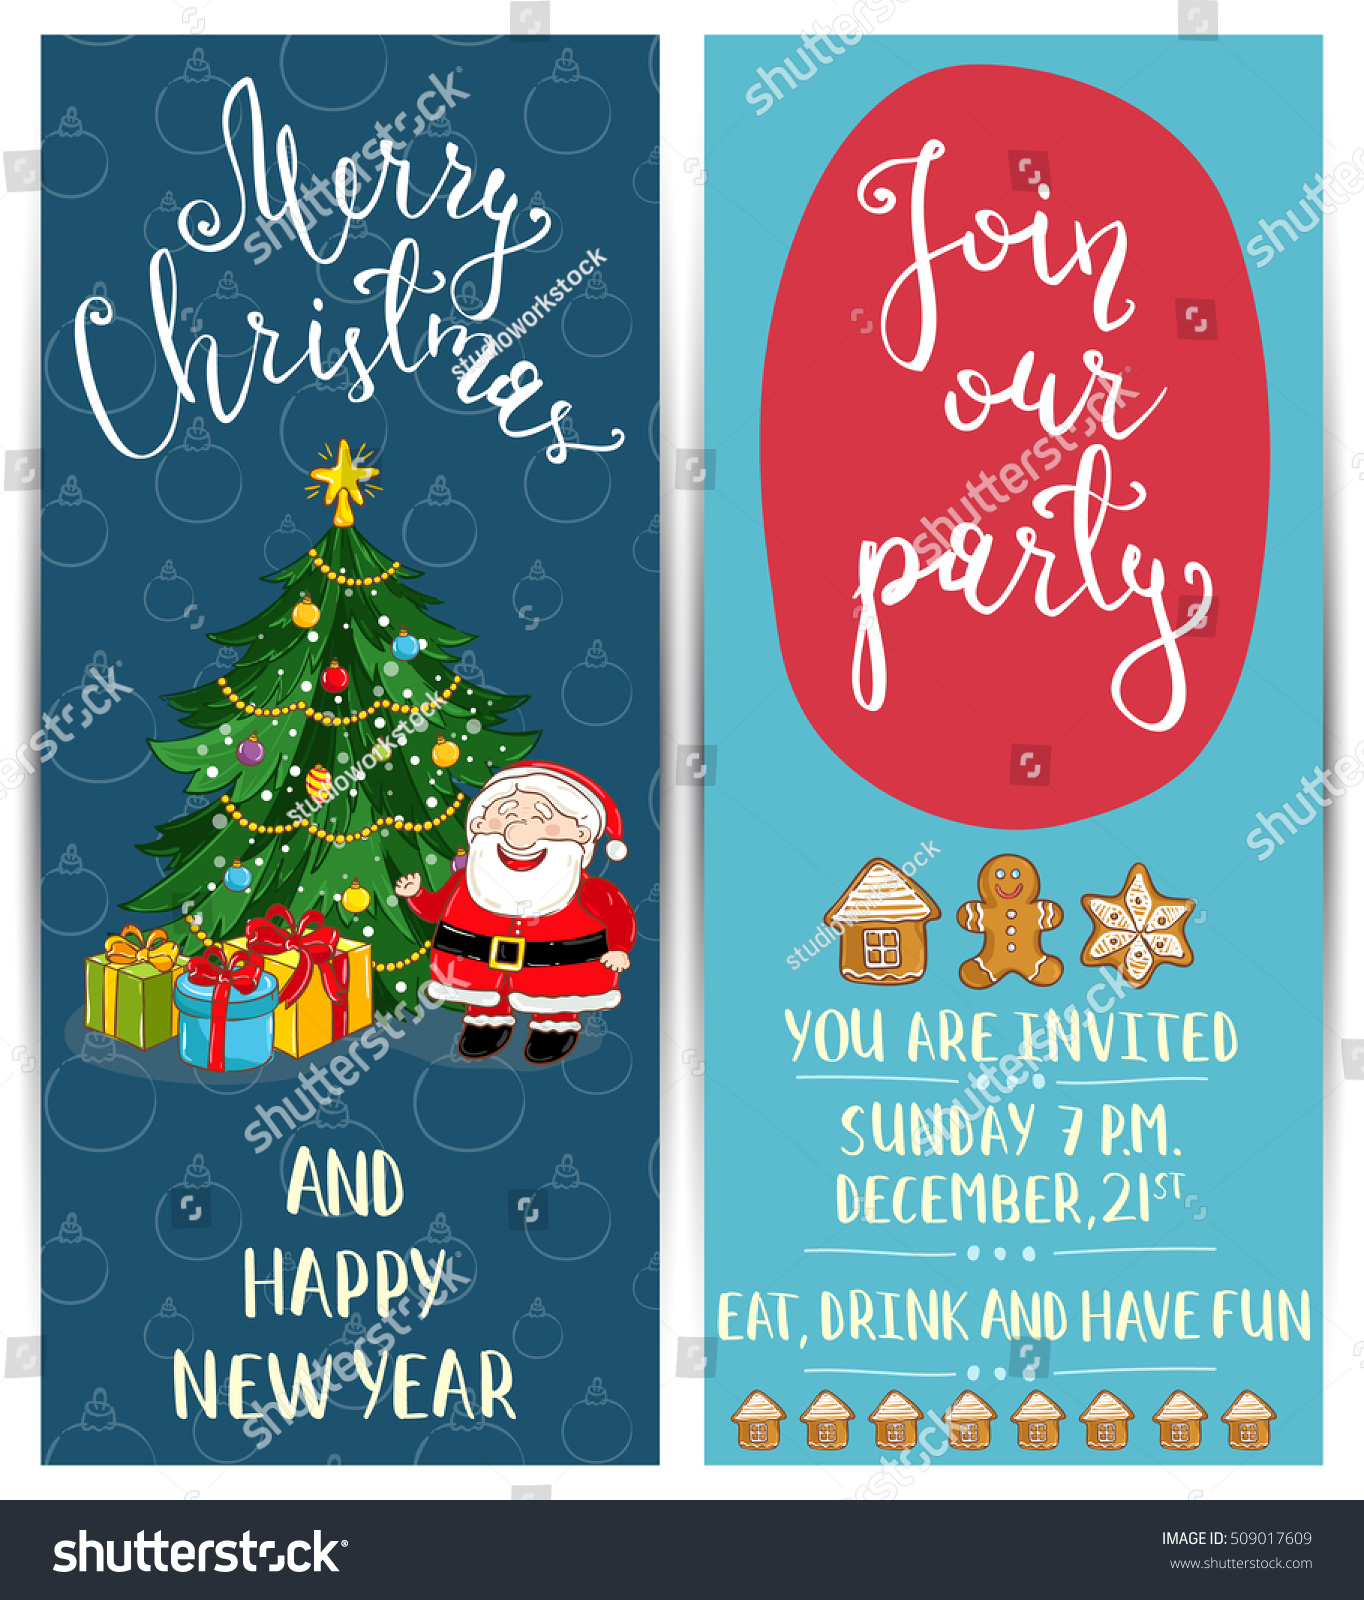 Merry Christmas and Happy New Year greetings card. Template of ...